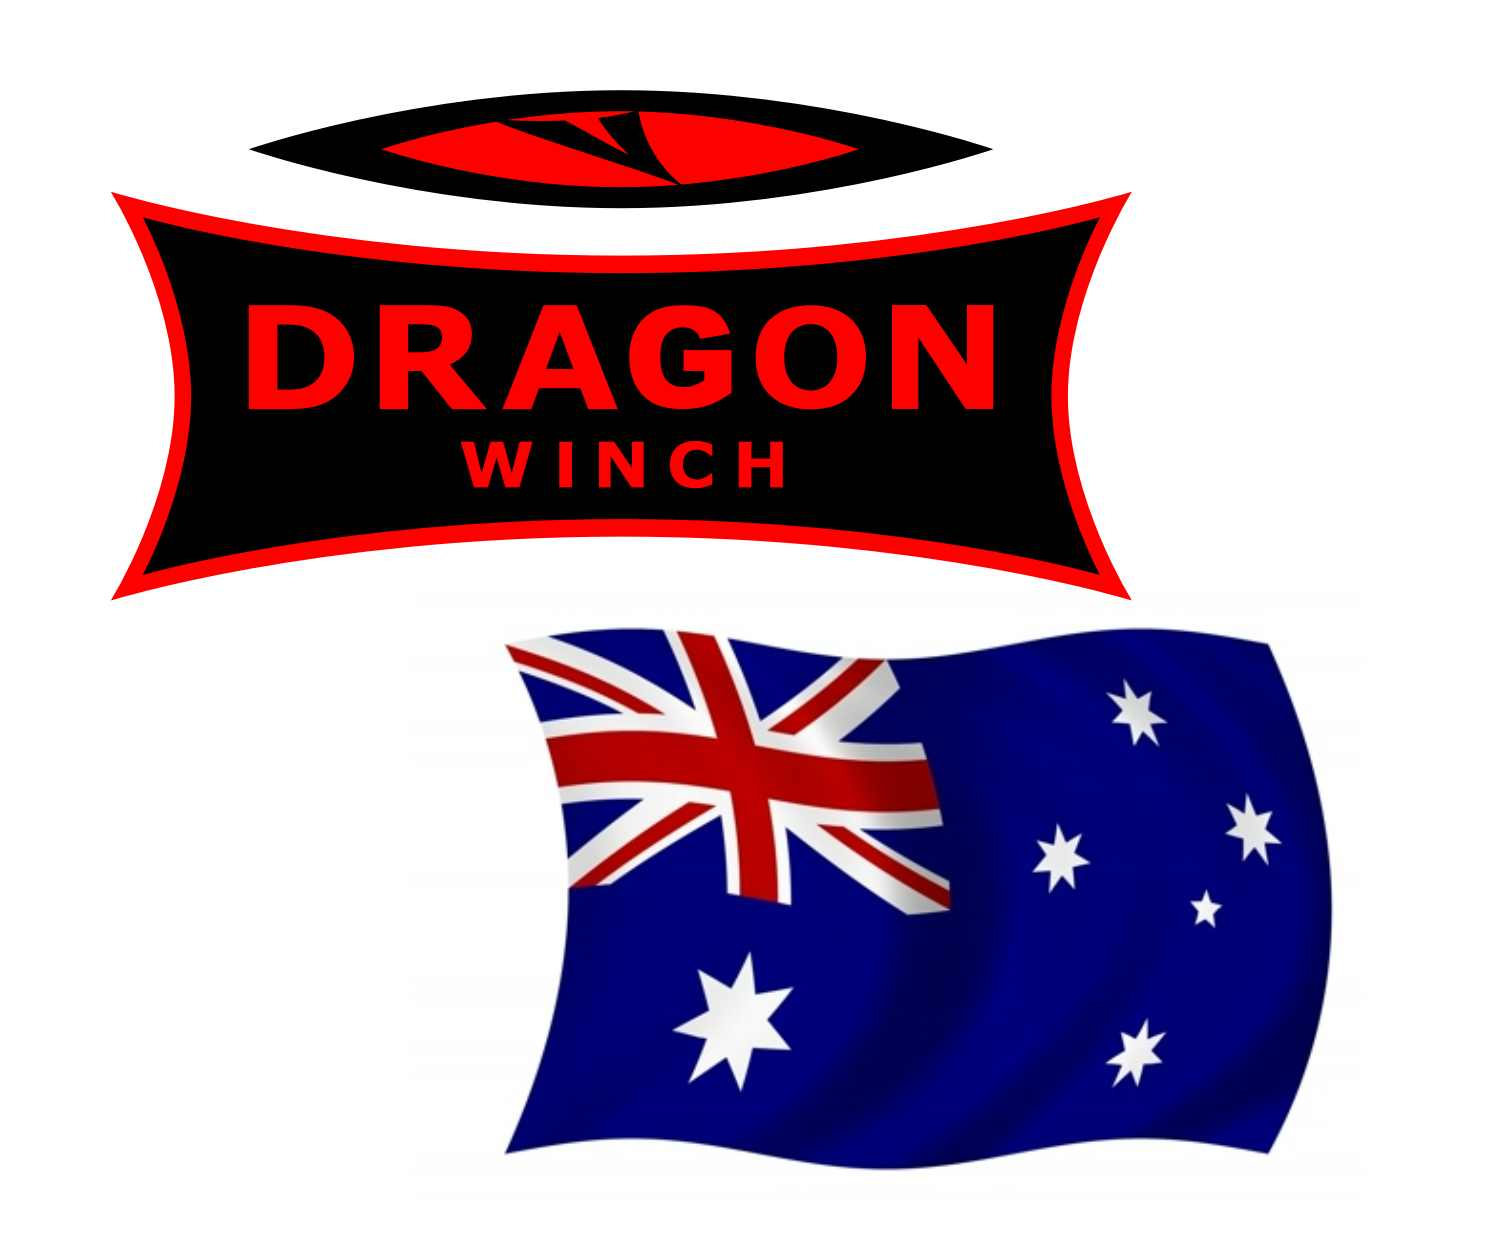 DRAGON WINCH W AUSTRALII